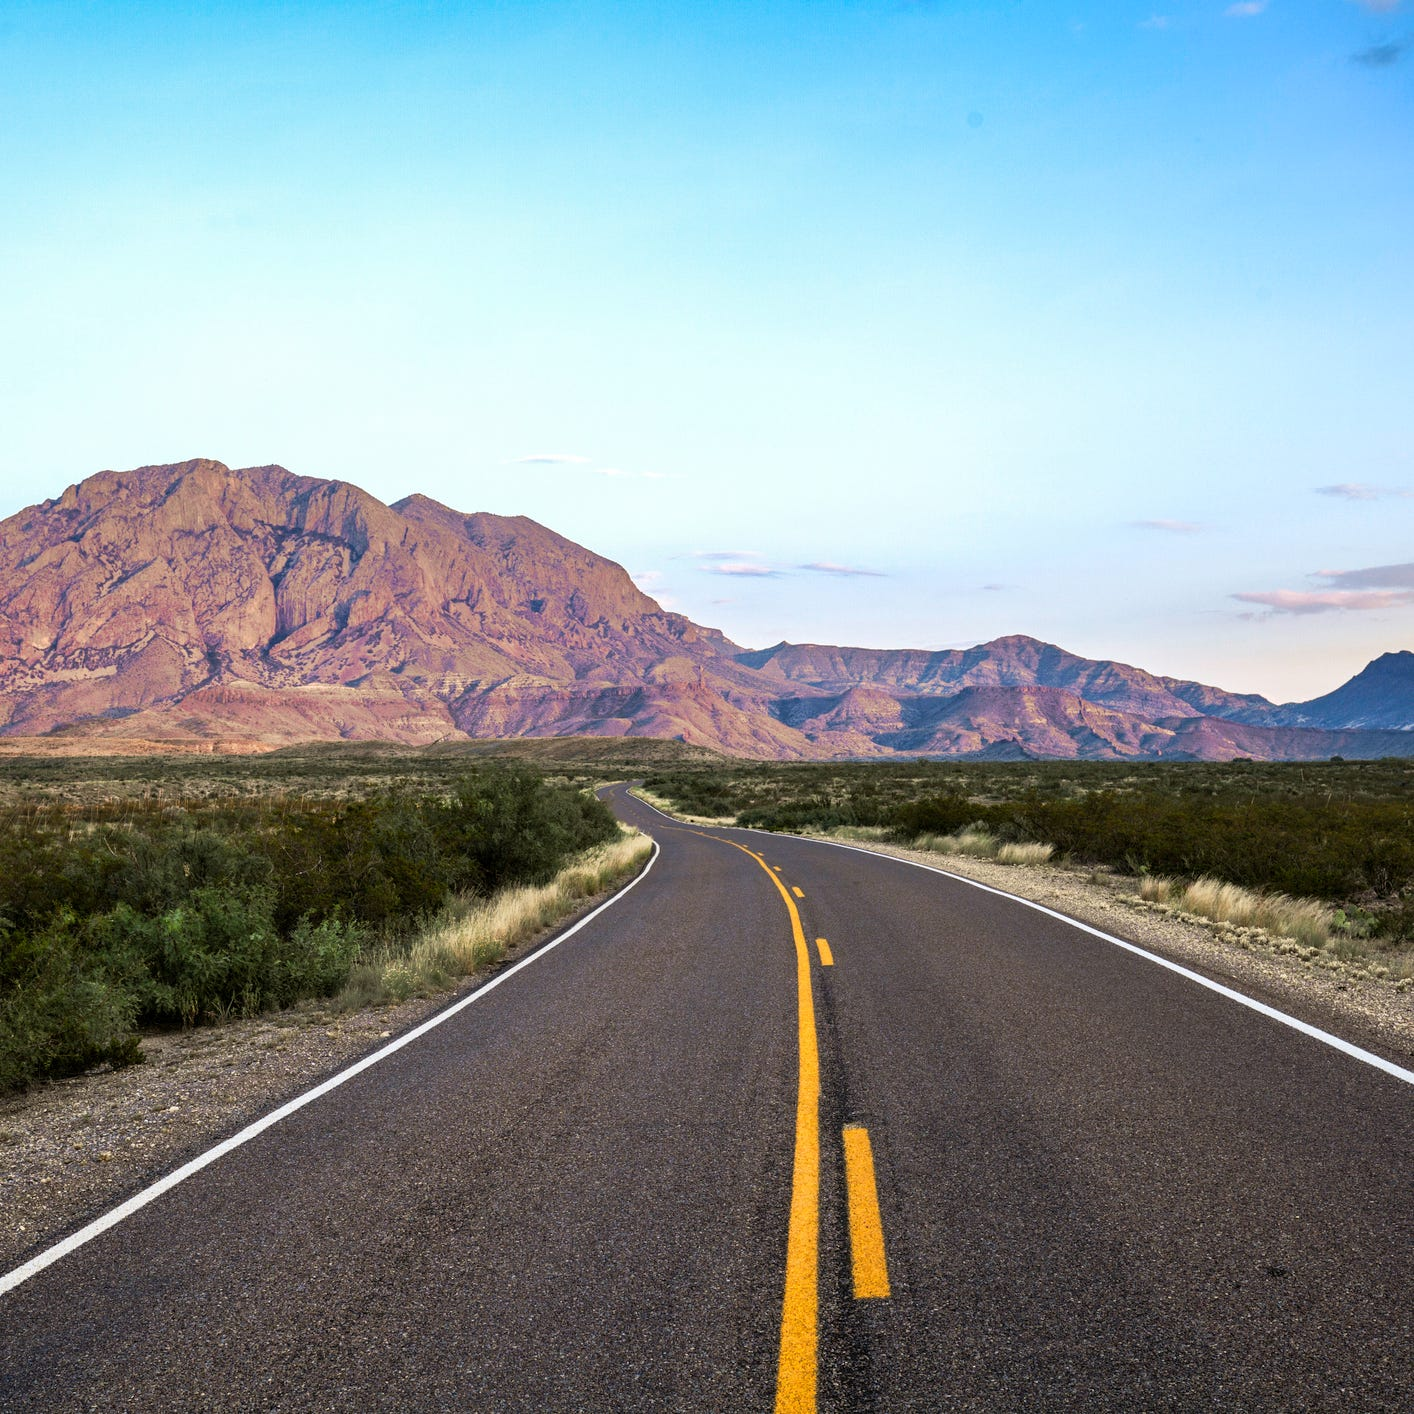 Best road trip in the middle of nowhere: Marathon to Presidio, Texas. Route: U.S. Highway 385, FM-170 (160 miles). The only companions you'll have during long stretches of this paved, two-lane road through Big Bend National Park are cacti and migratory birds. This is one of the most isolated of all U.S. national parks, but it's also one of the most dramatic, with desert, canyonand mountain landscapes. Santa Elena Canyon is worth the detour from the main park road to see its 1,500-foot drop-offs. Stop for lunch at the 1930s-era Starlight Theatre in the historic Terlingua Ghost Town. Movie buffs will marvel at the abandoned Western film sets at Contrabando.